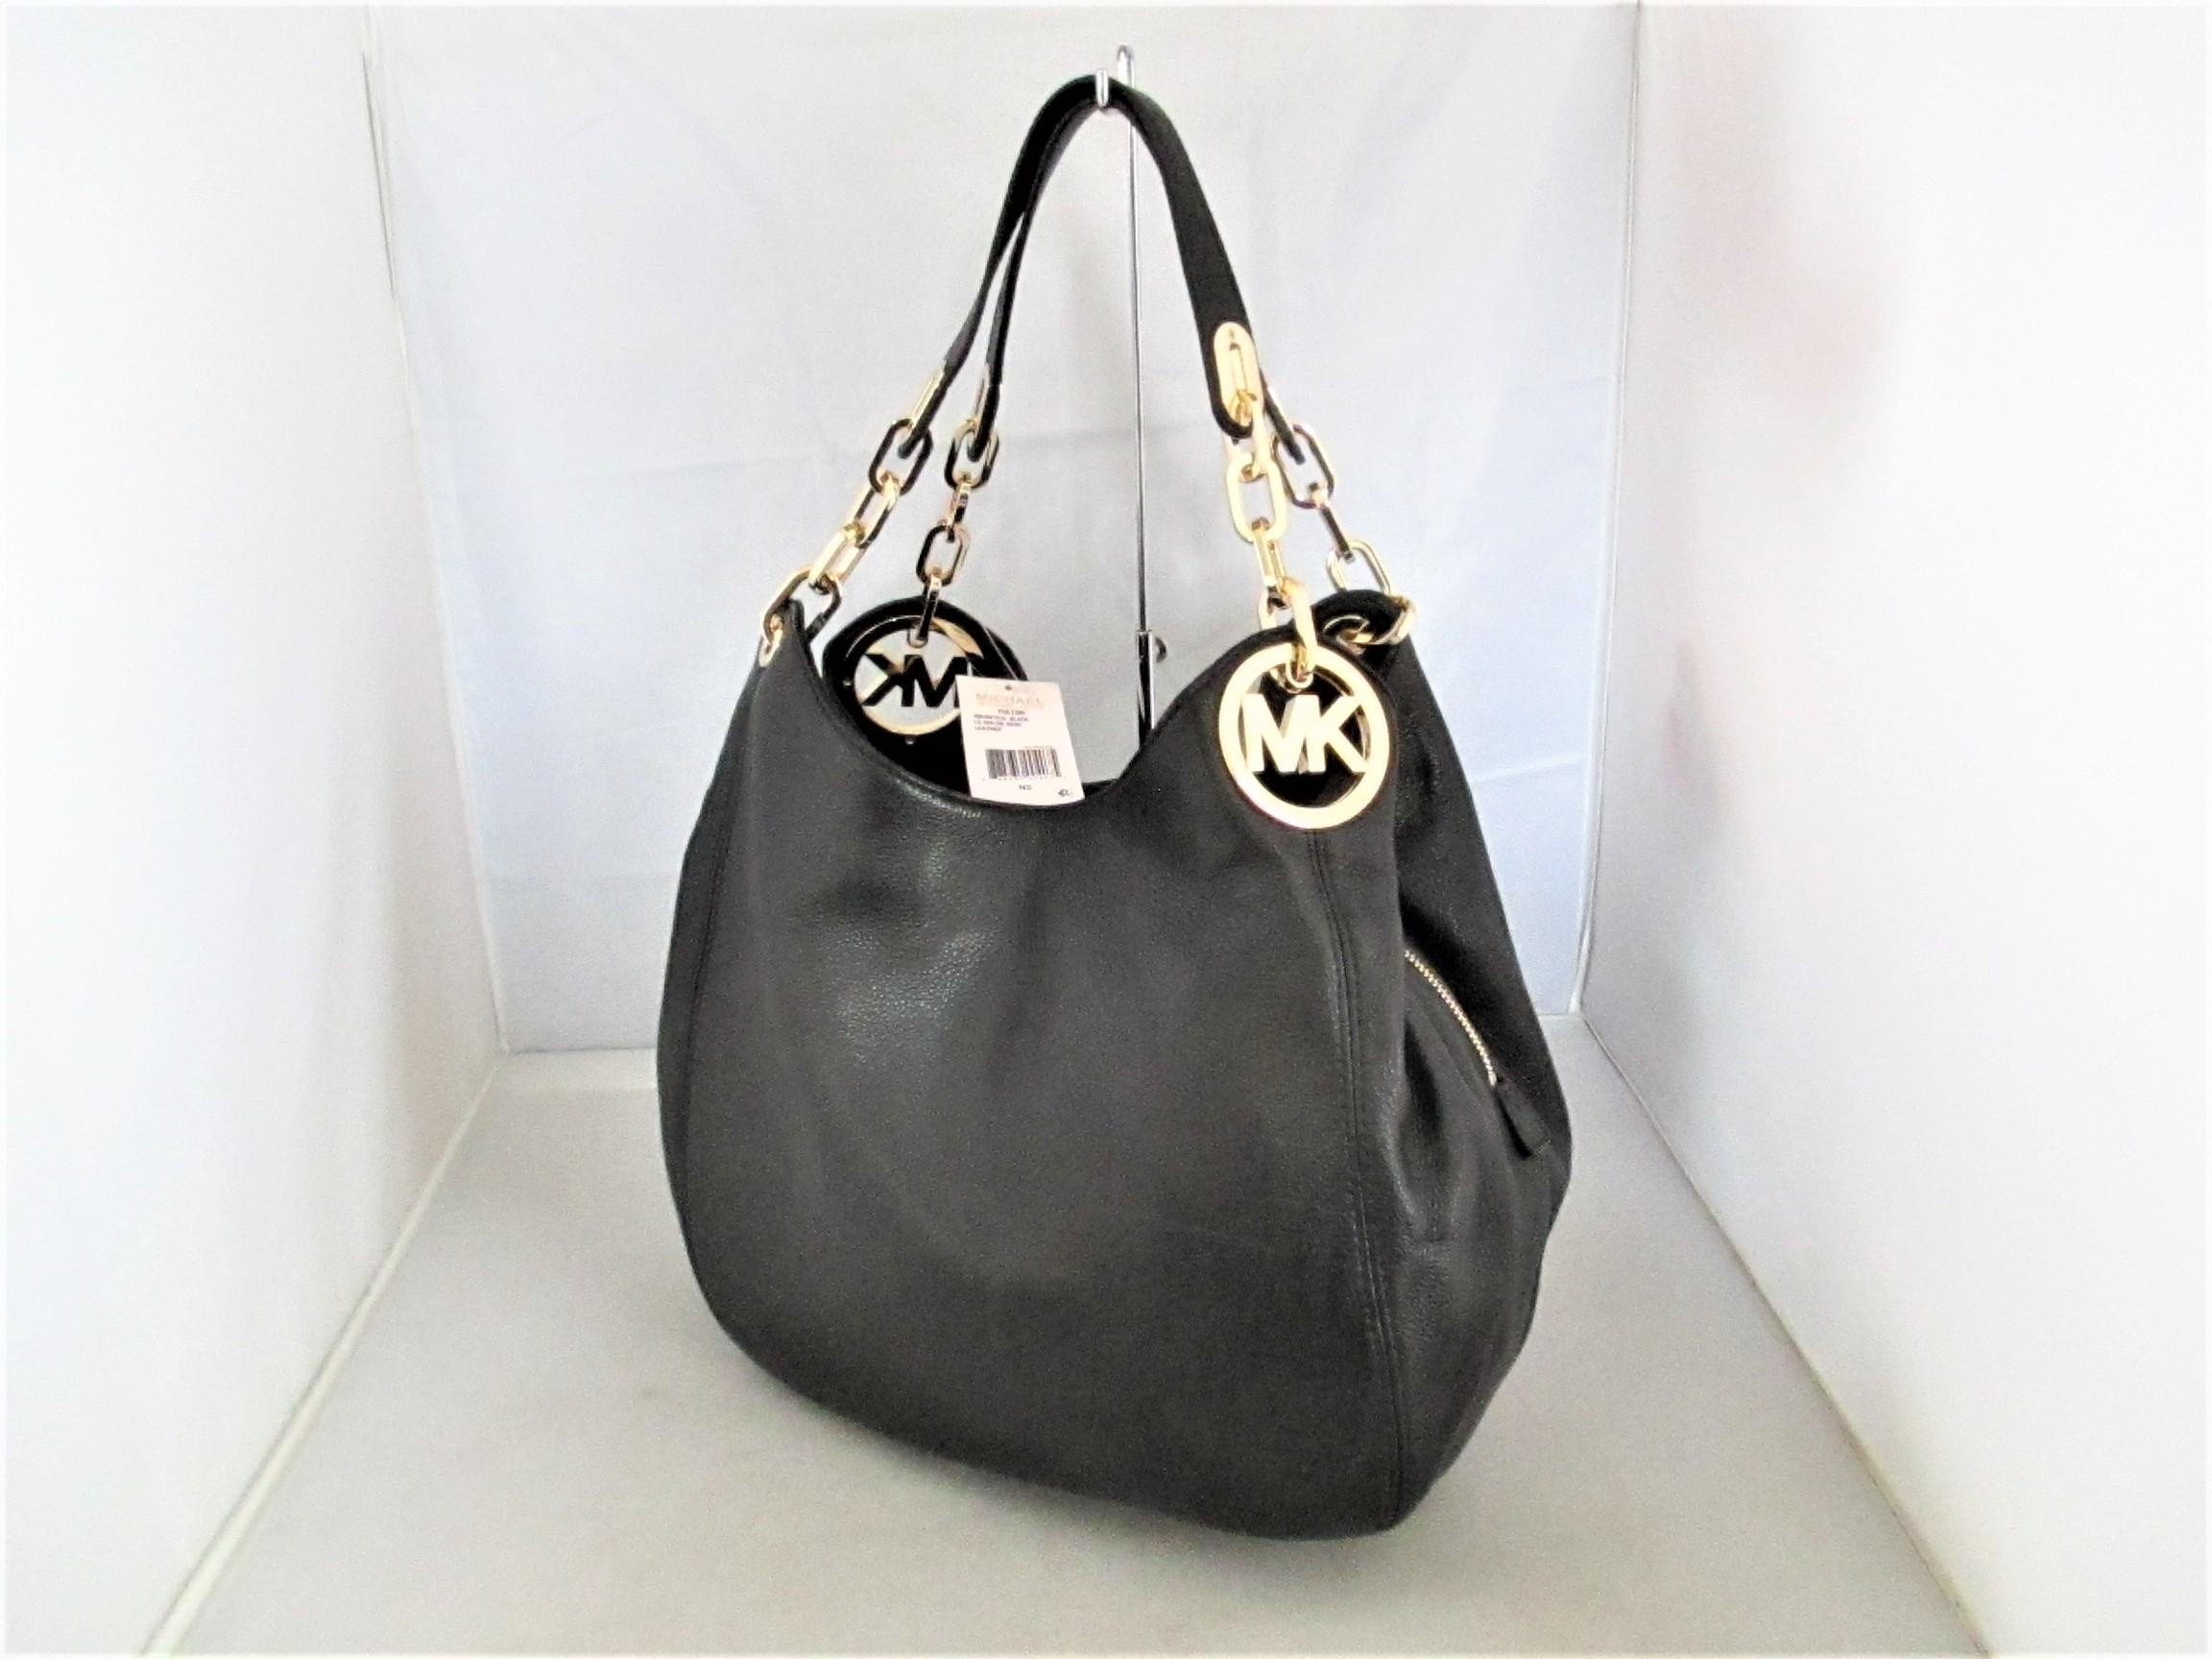 ... get michael kors fulton large tote hobo satchel black leather shoulder  bag tradesy 92a62 c2f15 7feb395aa3636